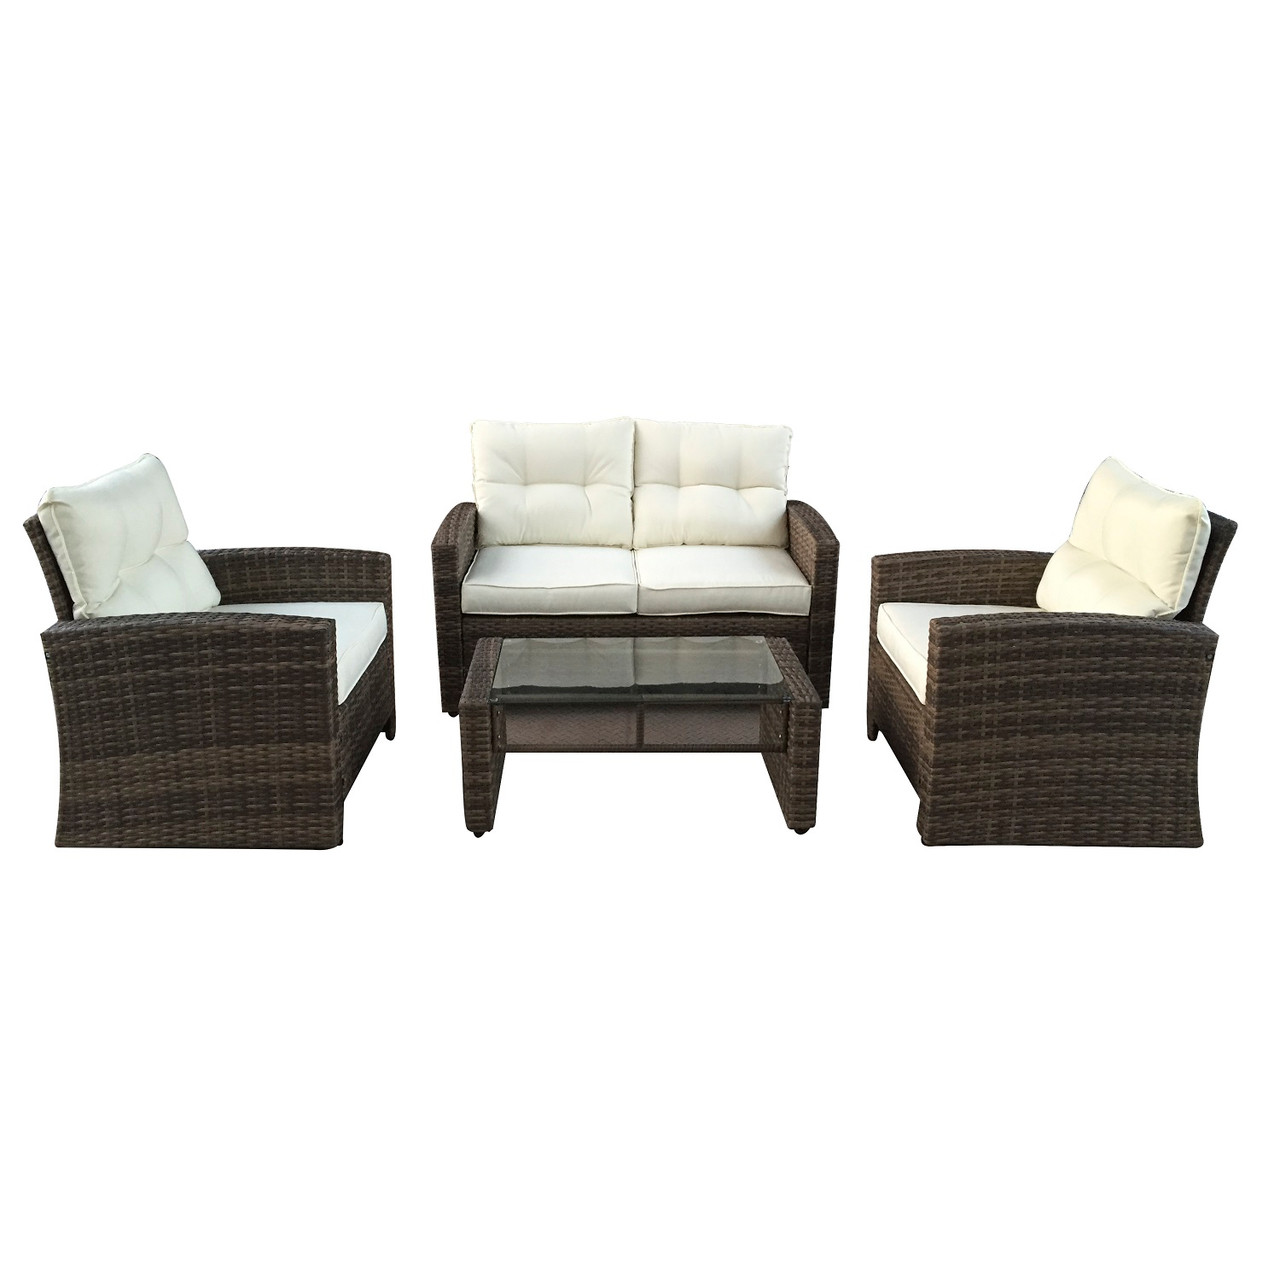 4pc Brown Beige Two Tone Rattan Outdoor Patio Furniture Set With Cushions 50